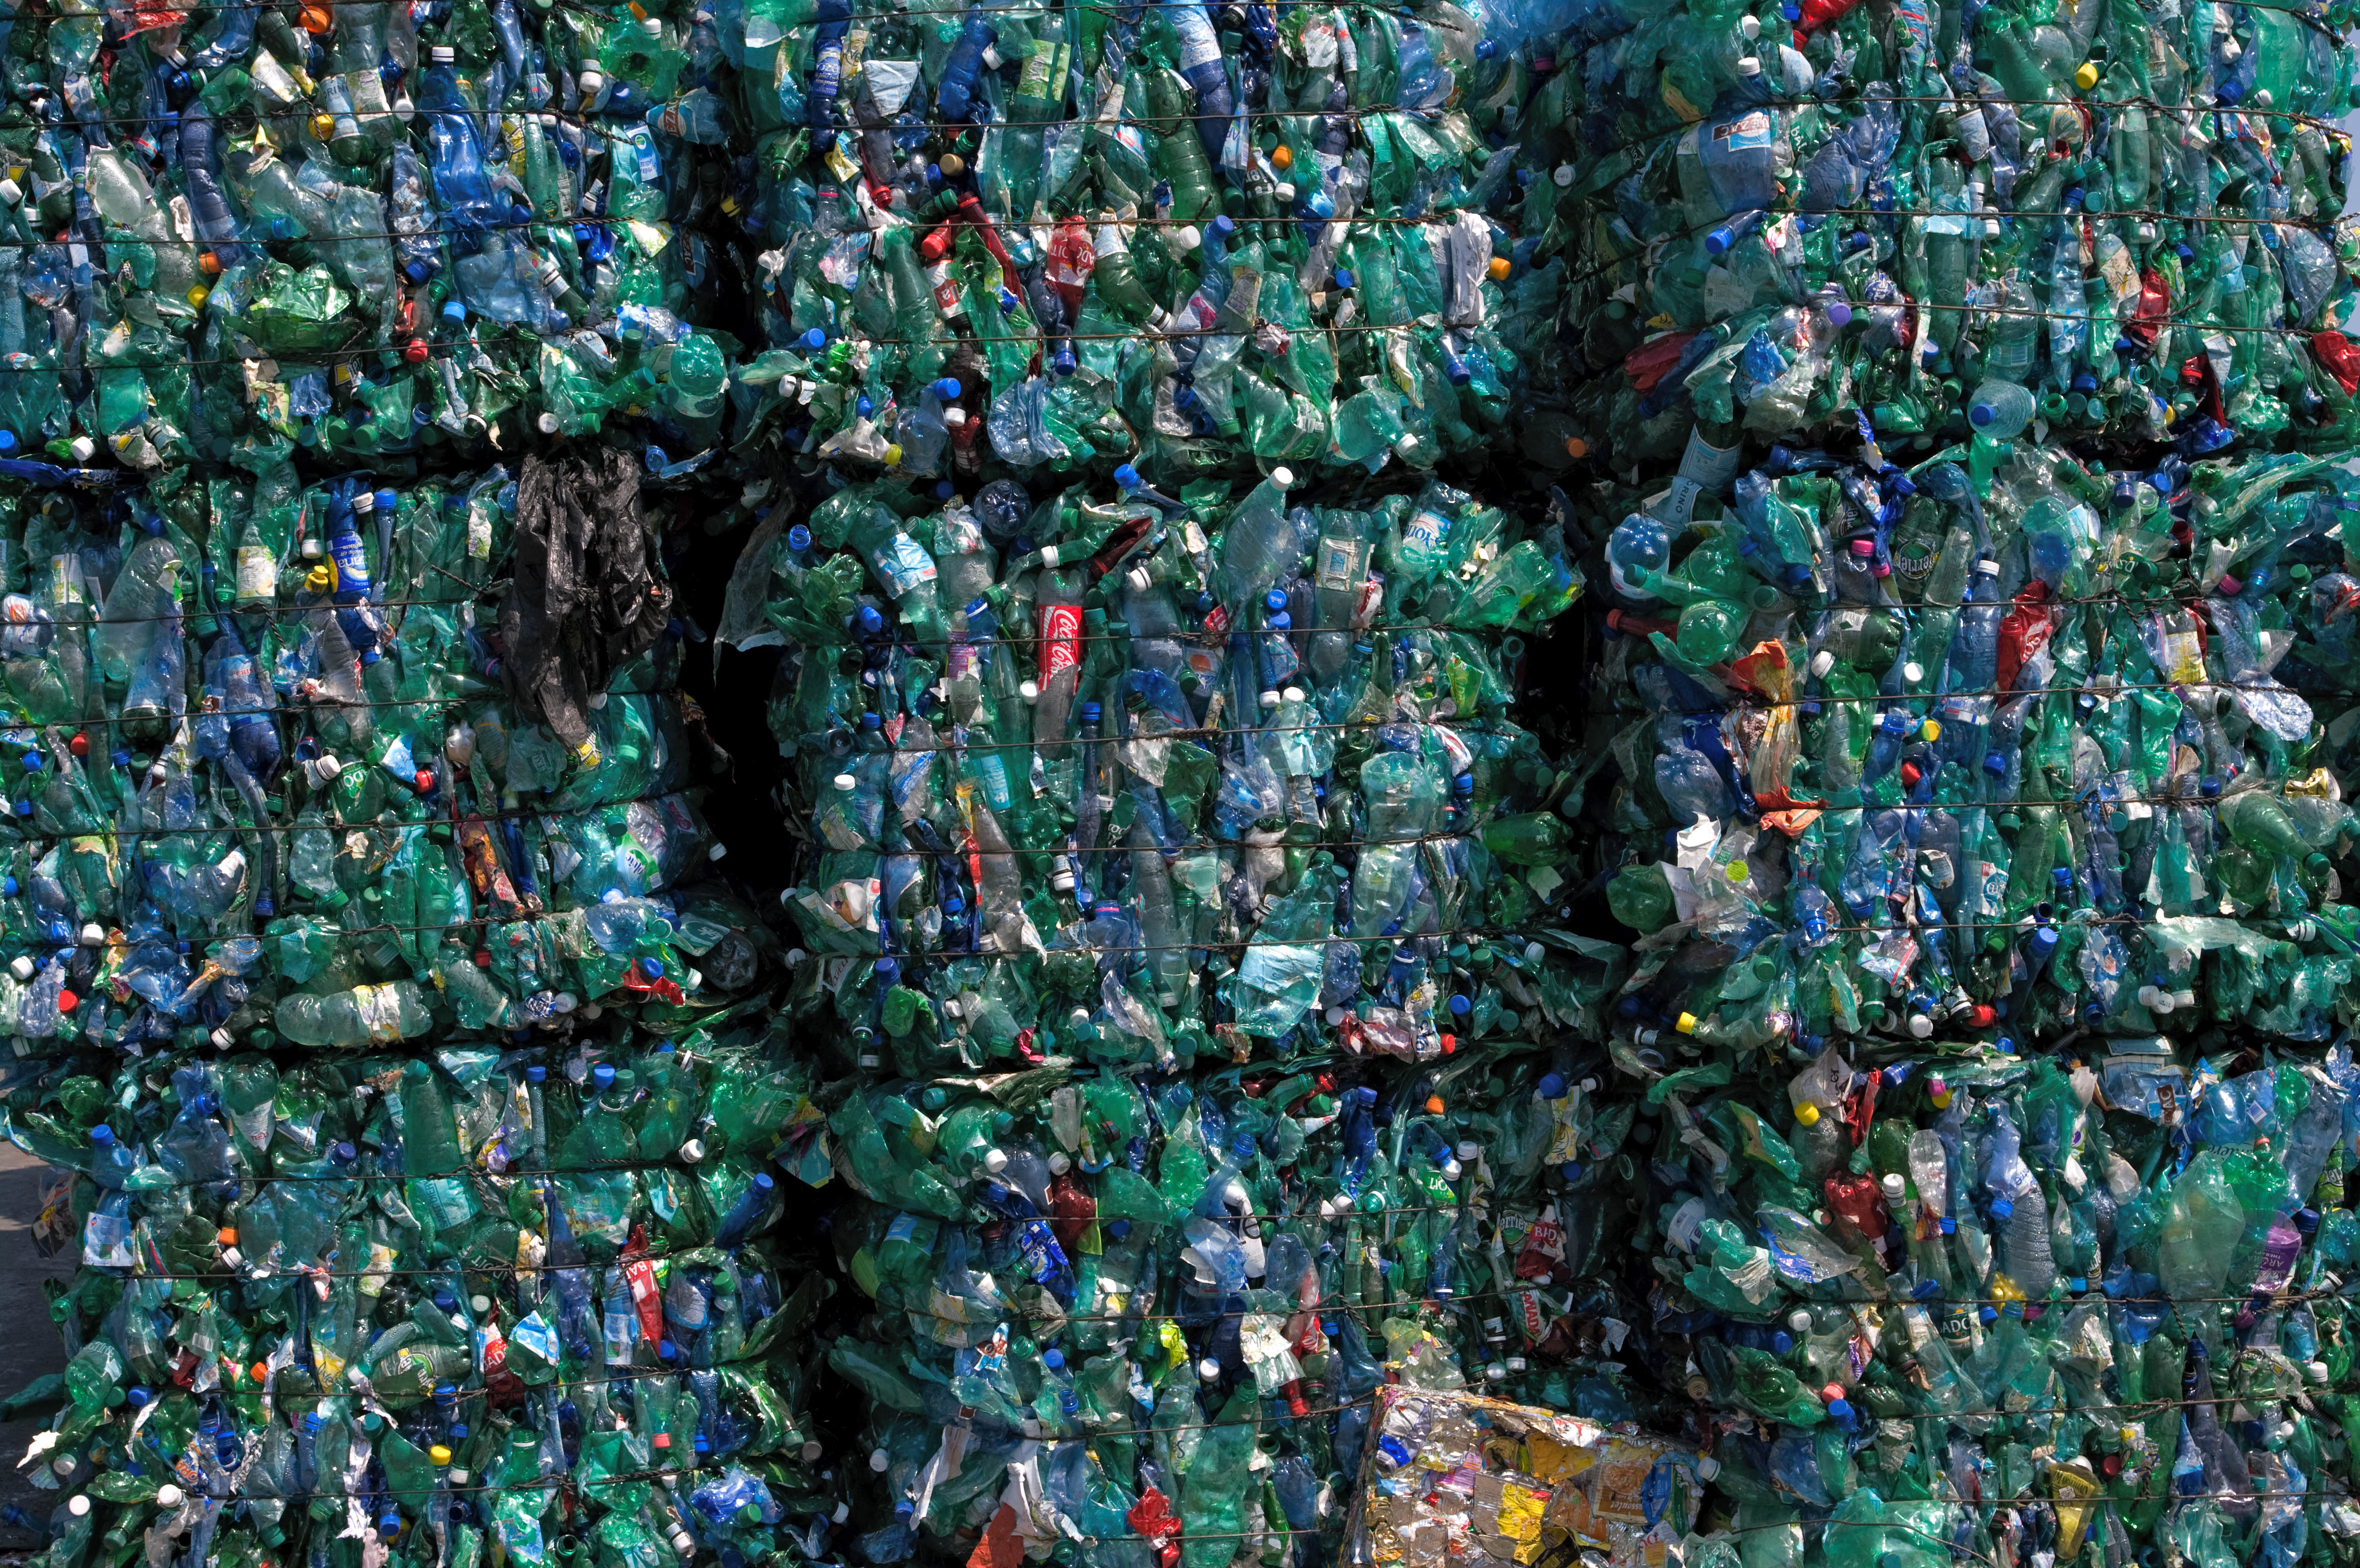 Managing, Reusing, and Recycling Used Oil